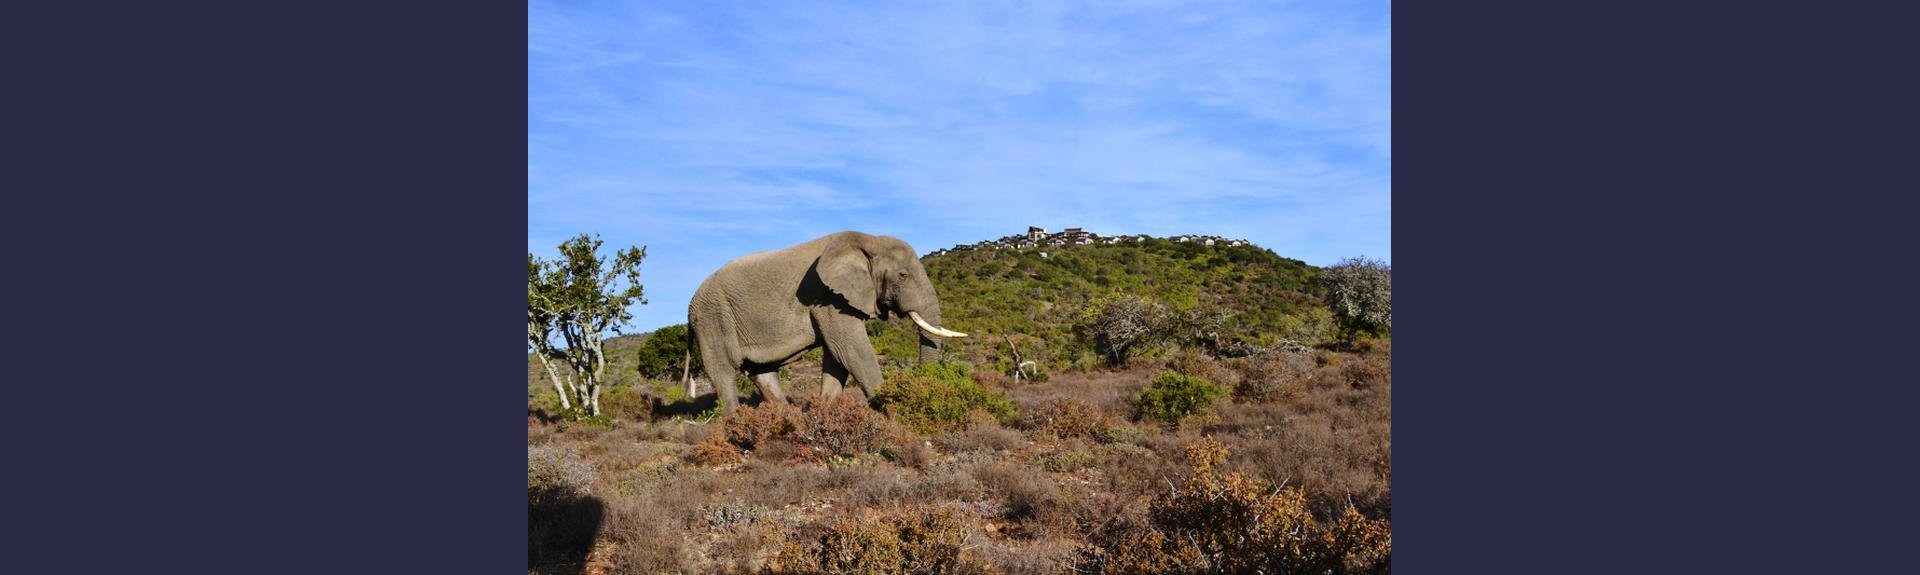 Kuzuko Safari Holiday Accommodation South Africa | Things to do With kids